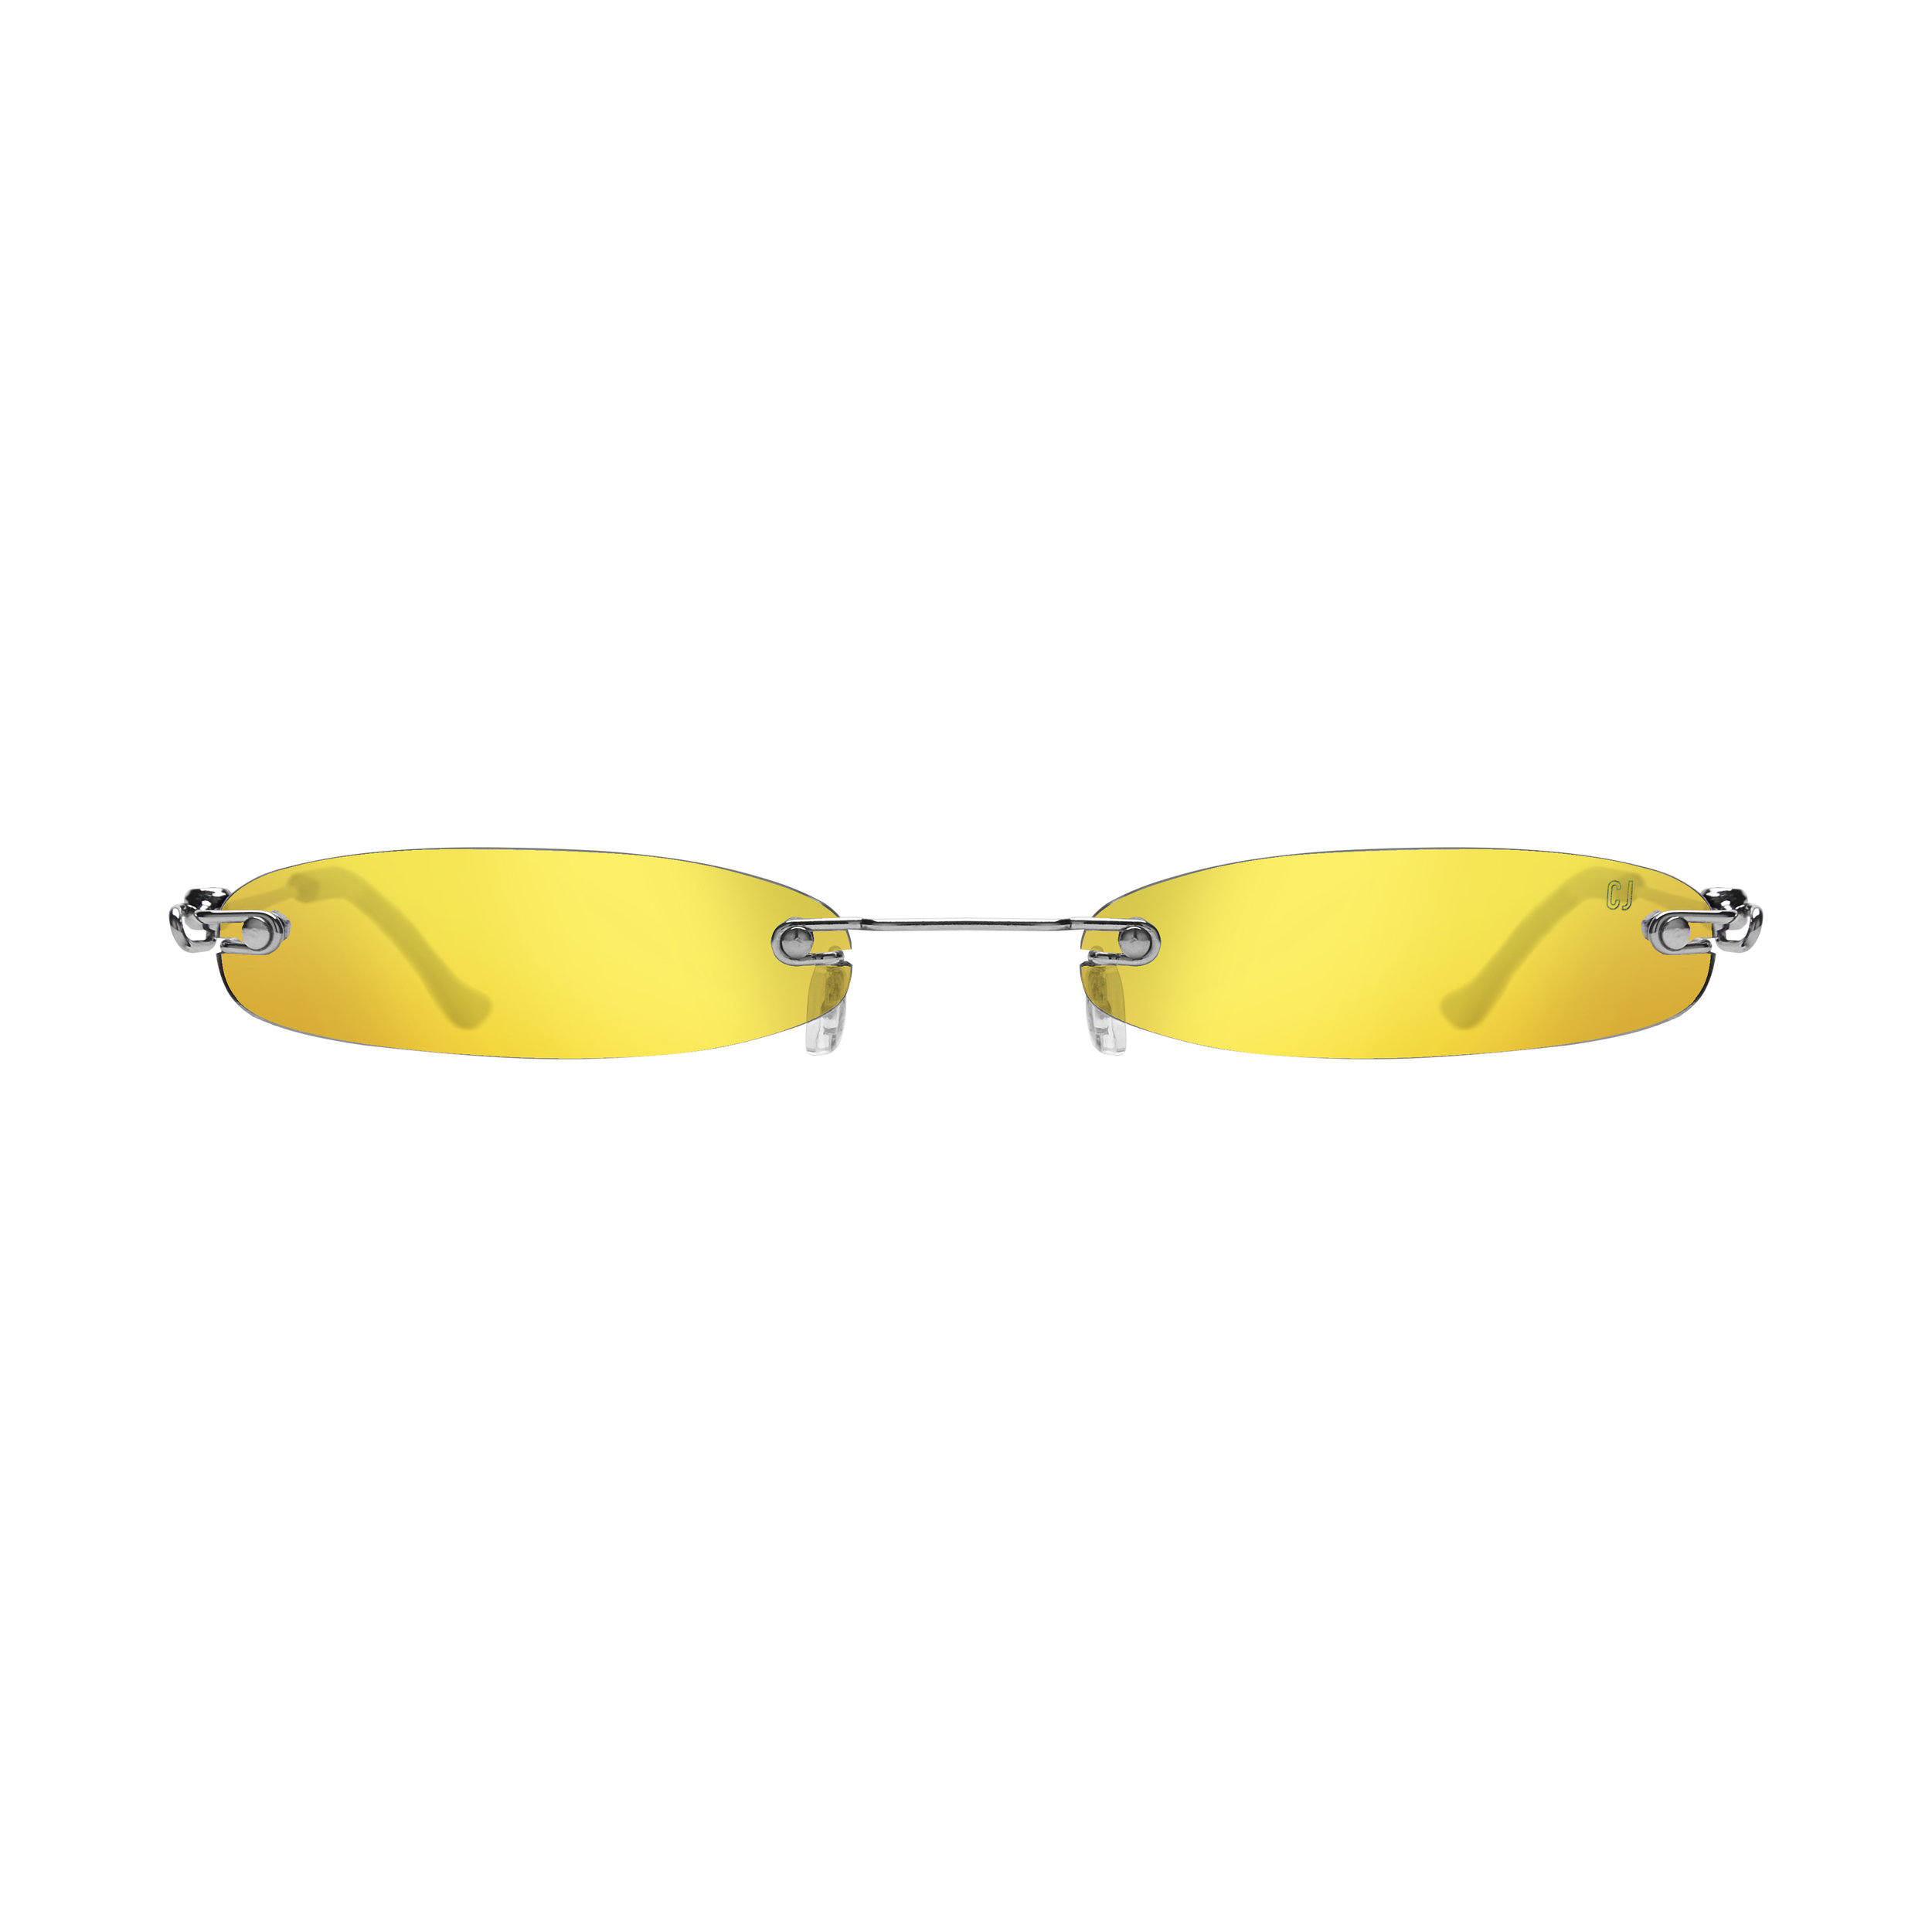 ChristianahJones_Glasses_MirrorYellow_01 (1).jpg